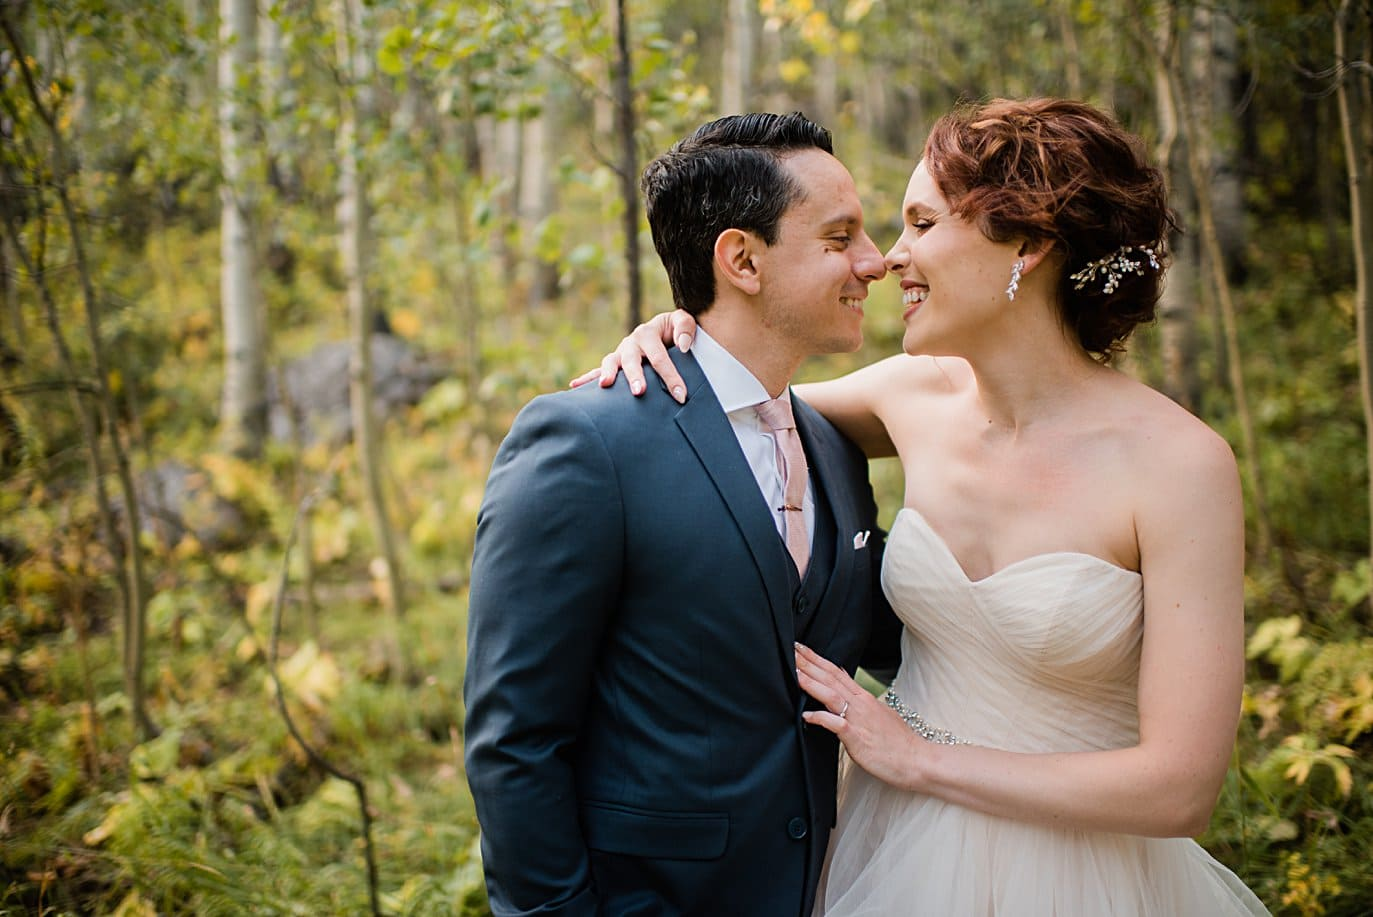 intimate fall portrait in the aspen trees at fall Maroon Bells wedding by Snowmass wedding photographer Jennie Crate